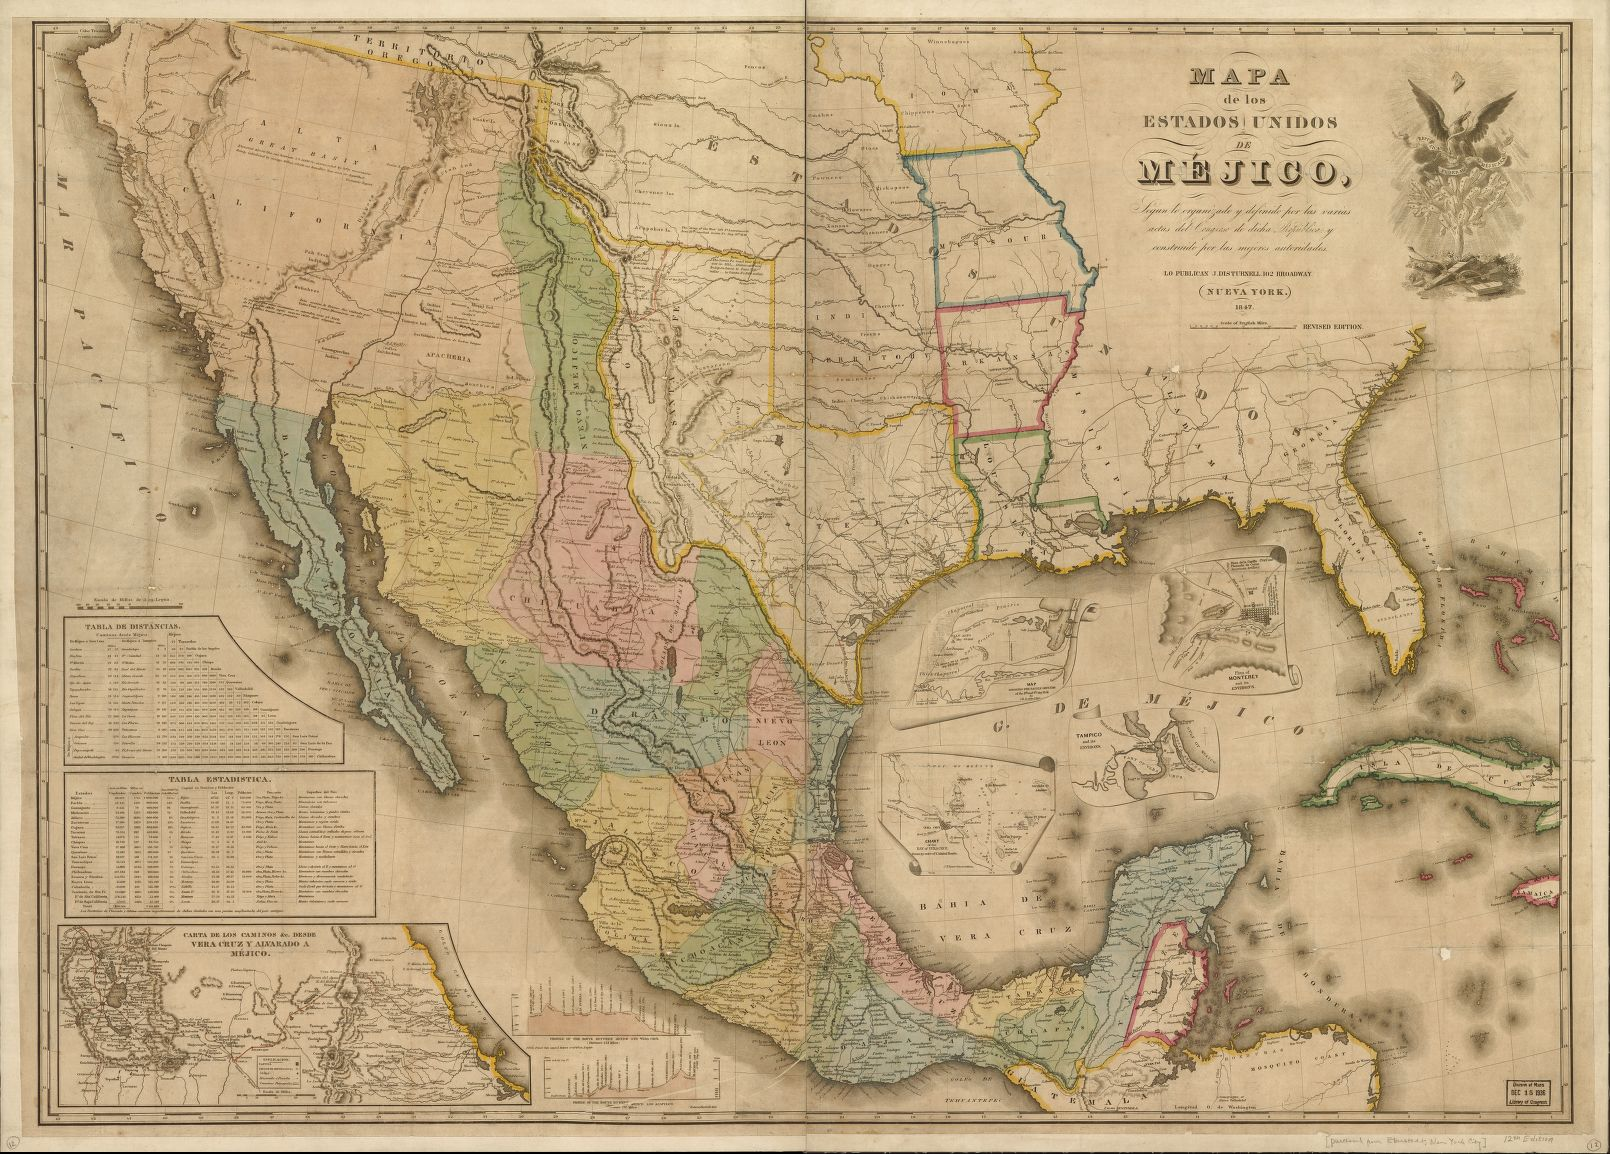 Map od the United State of Mexico.jpg